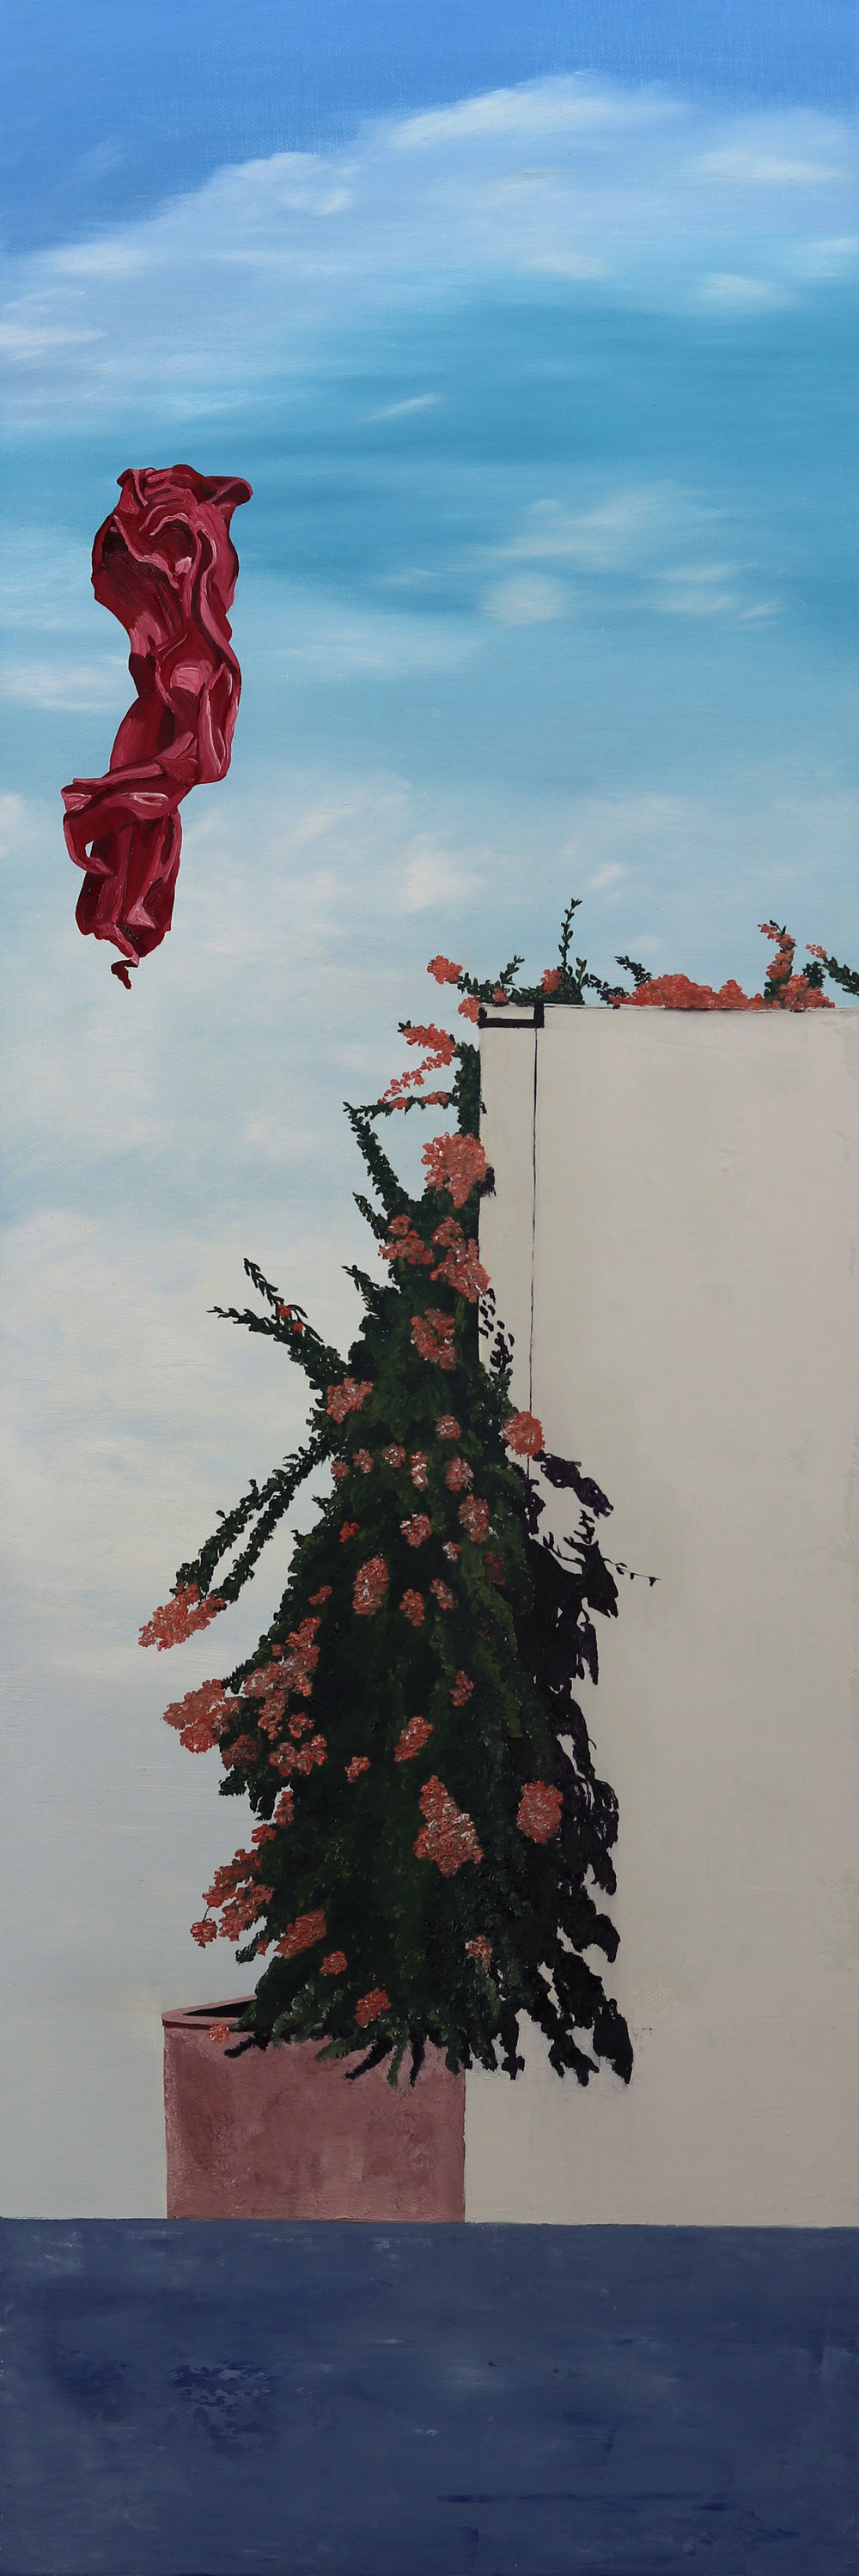 C. Rasmussen |  Floating Above  | 30x10 inches | oil on canvas.